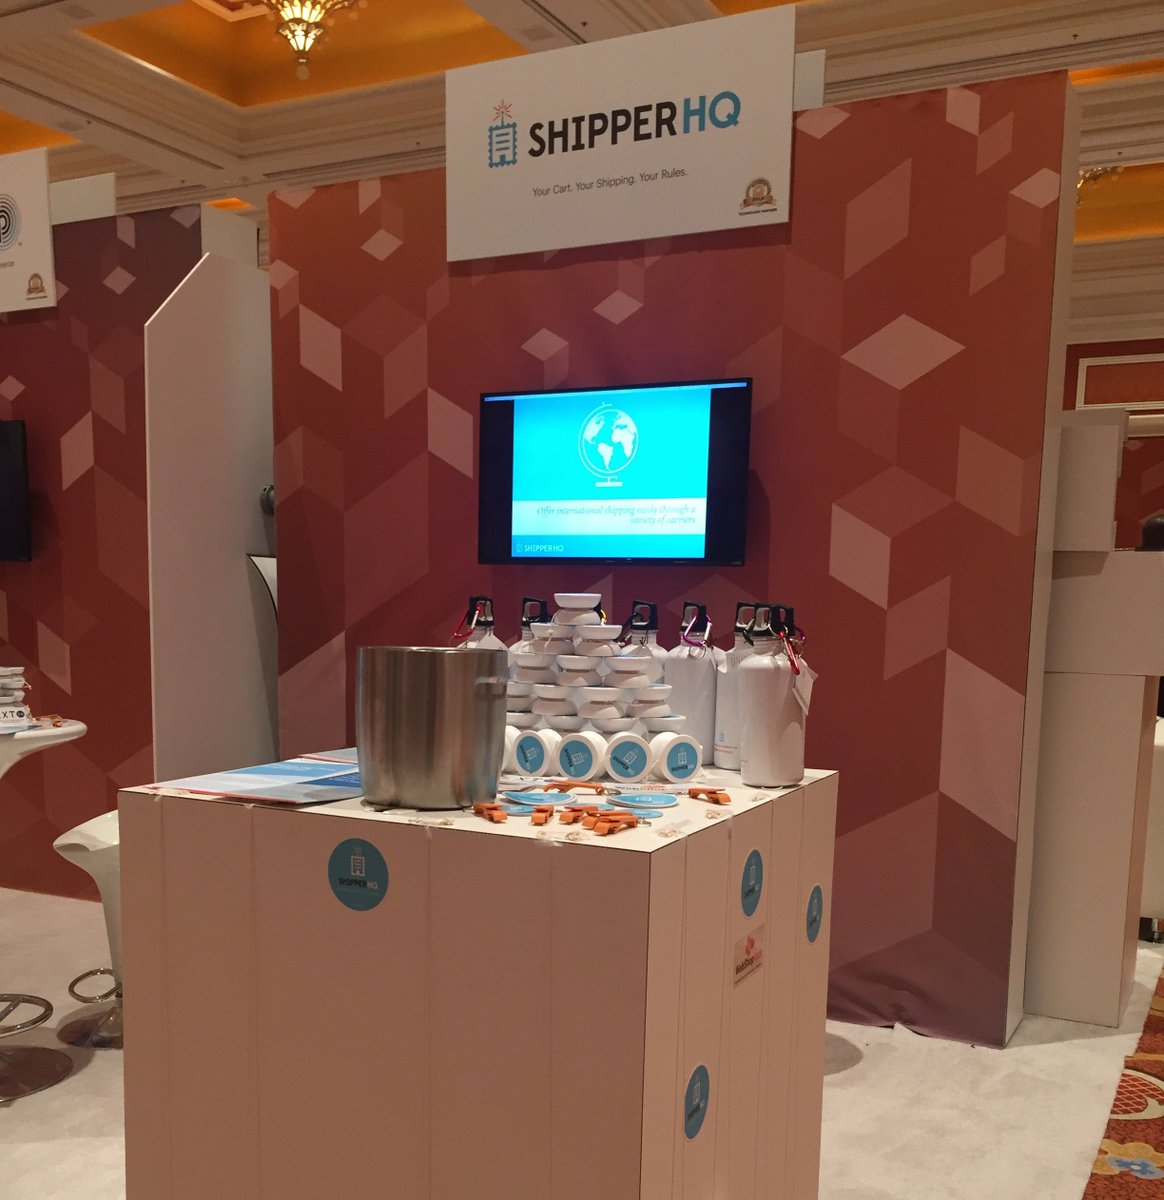 ShipperHQ: Have you joined our @ShipperHQ YoYo contest yet? Find our team and show off your coolest trick. #MagentoImagine https://t.co/N0DJFq8SSb